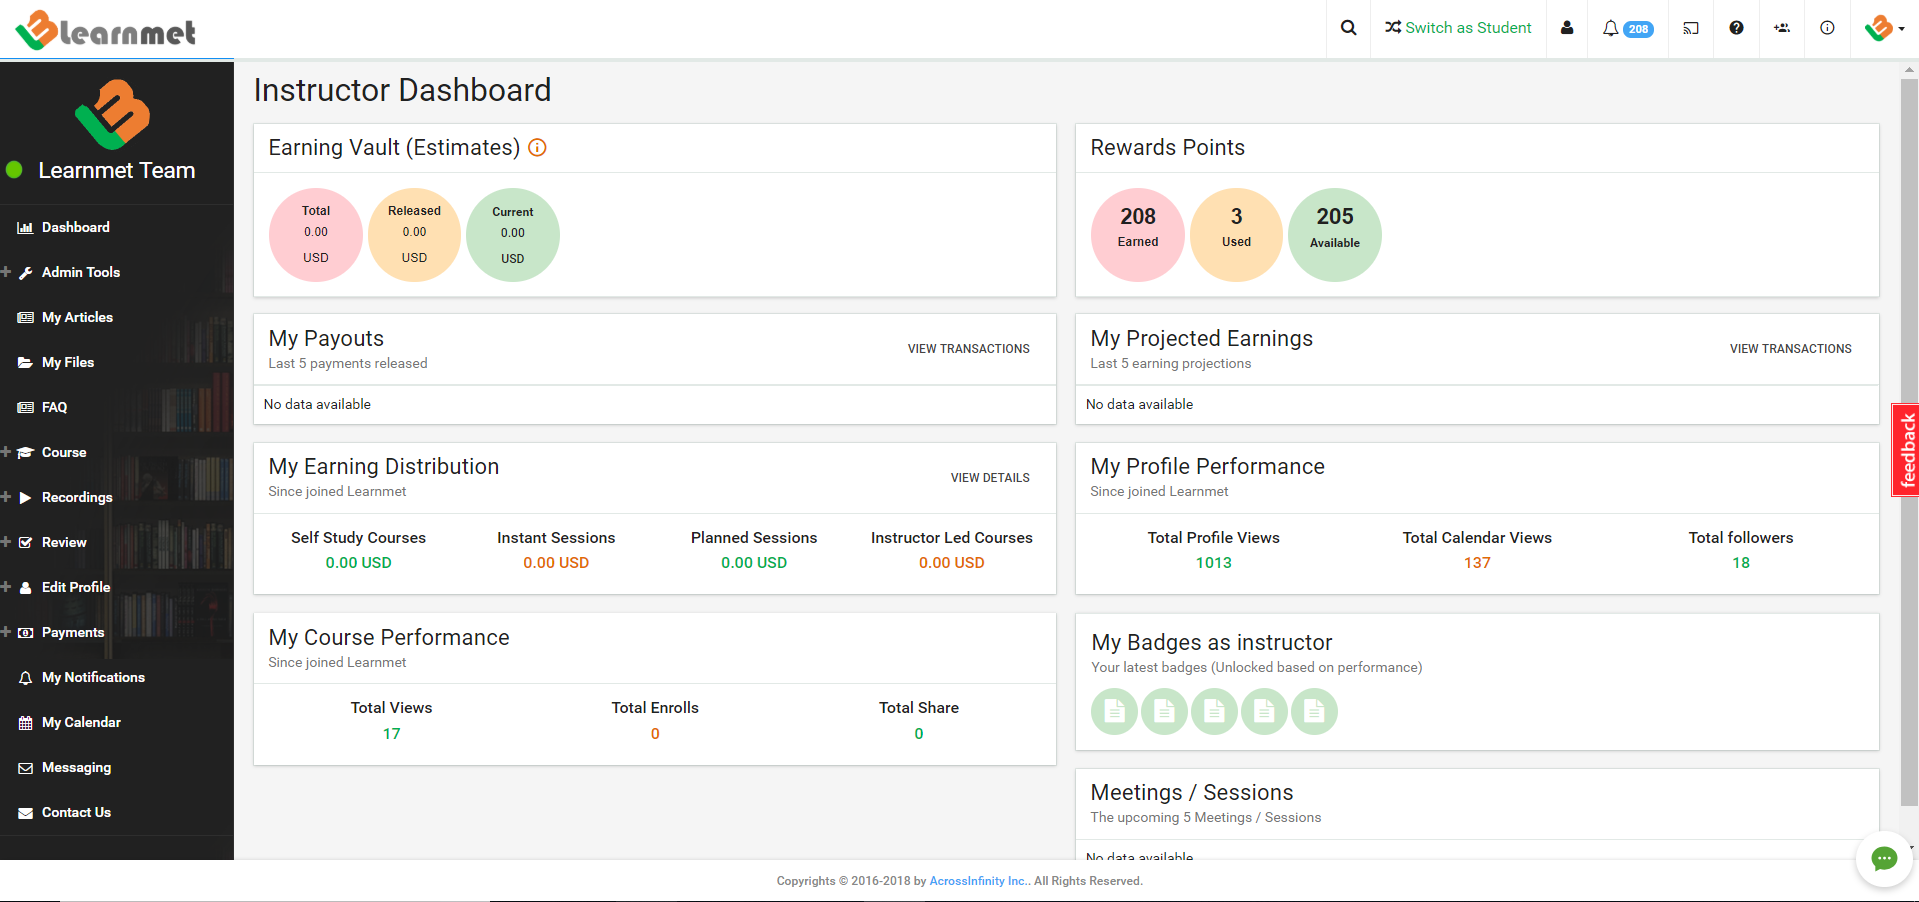 Know your learnmet teacher dashboard